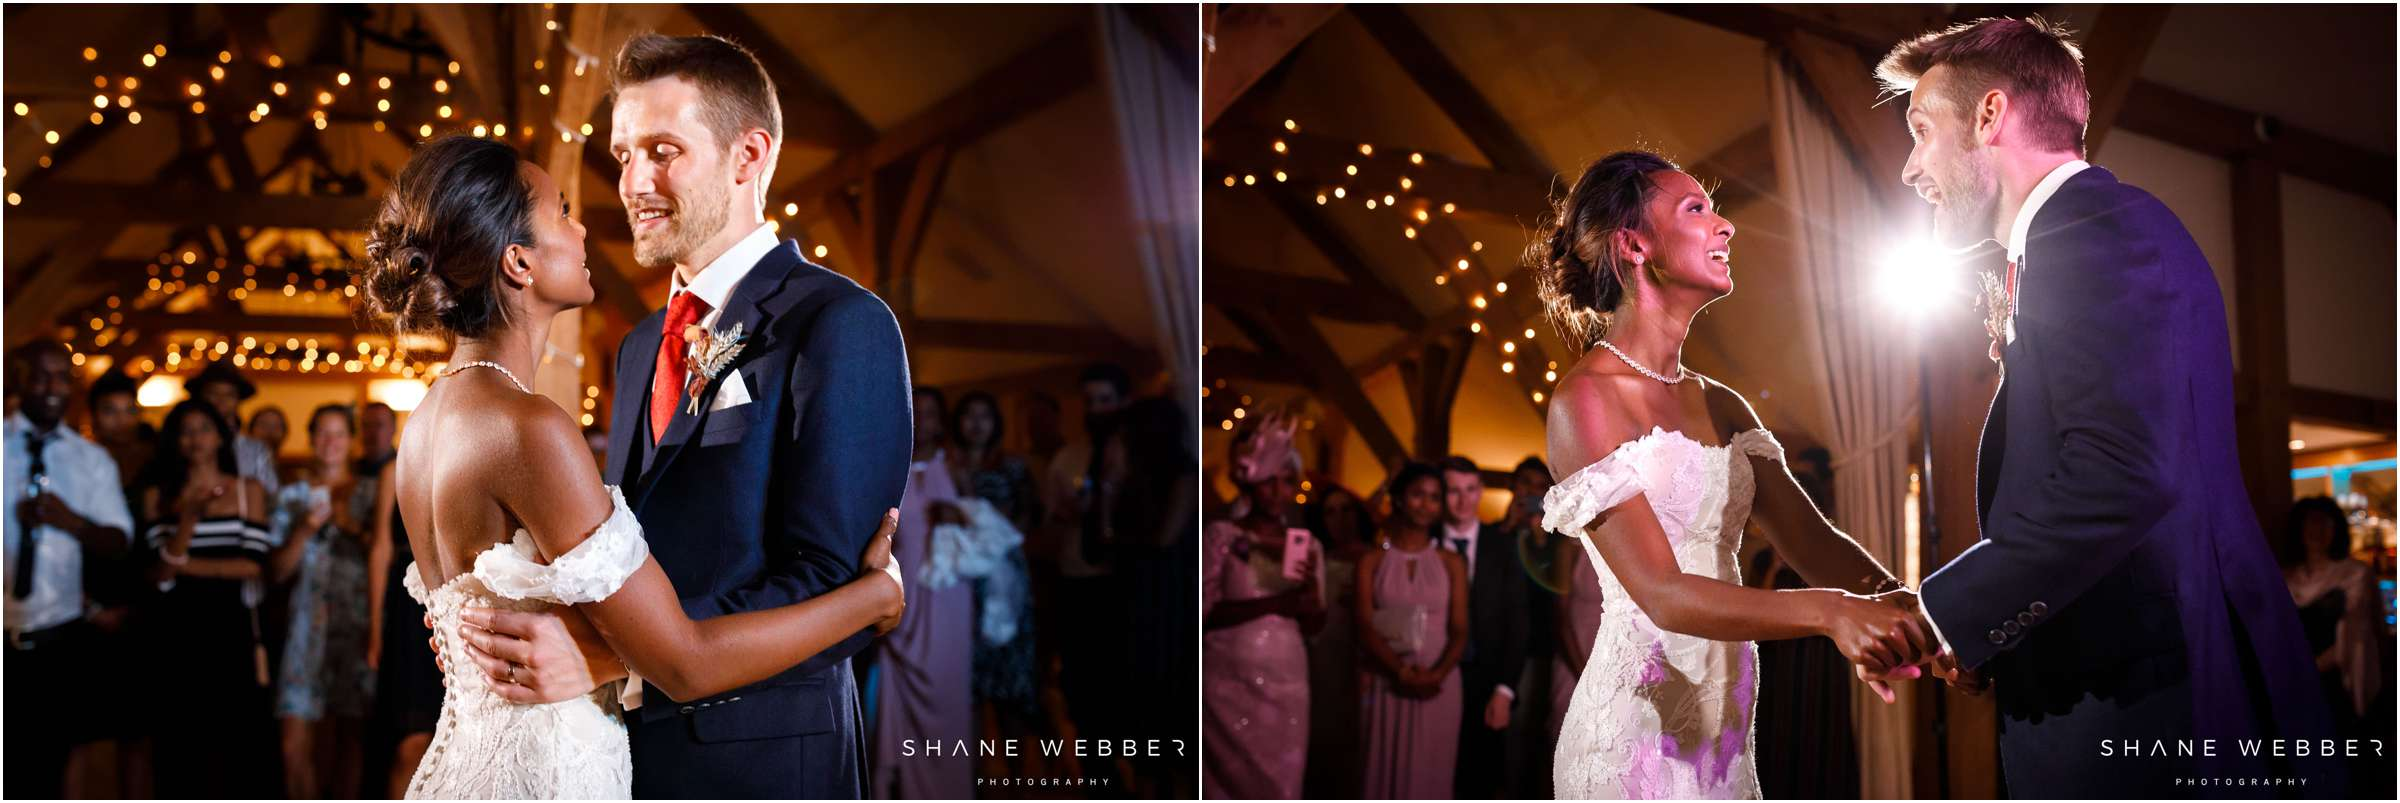 couples first dance in barn wedding venue